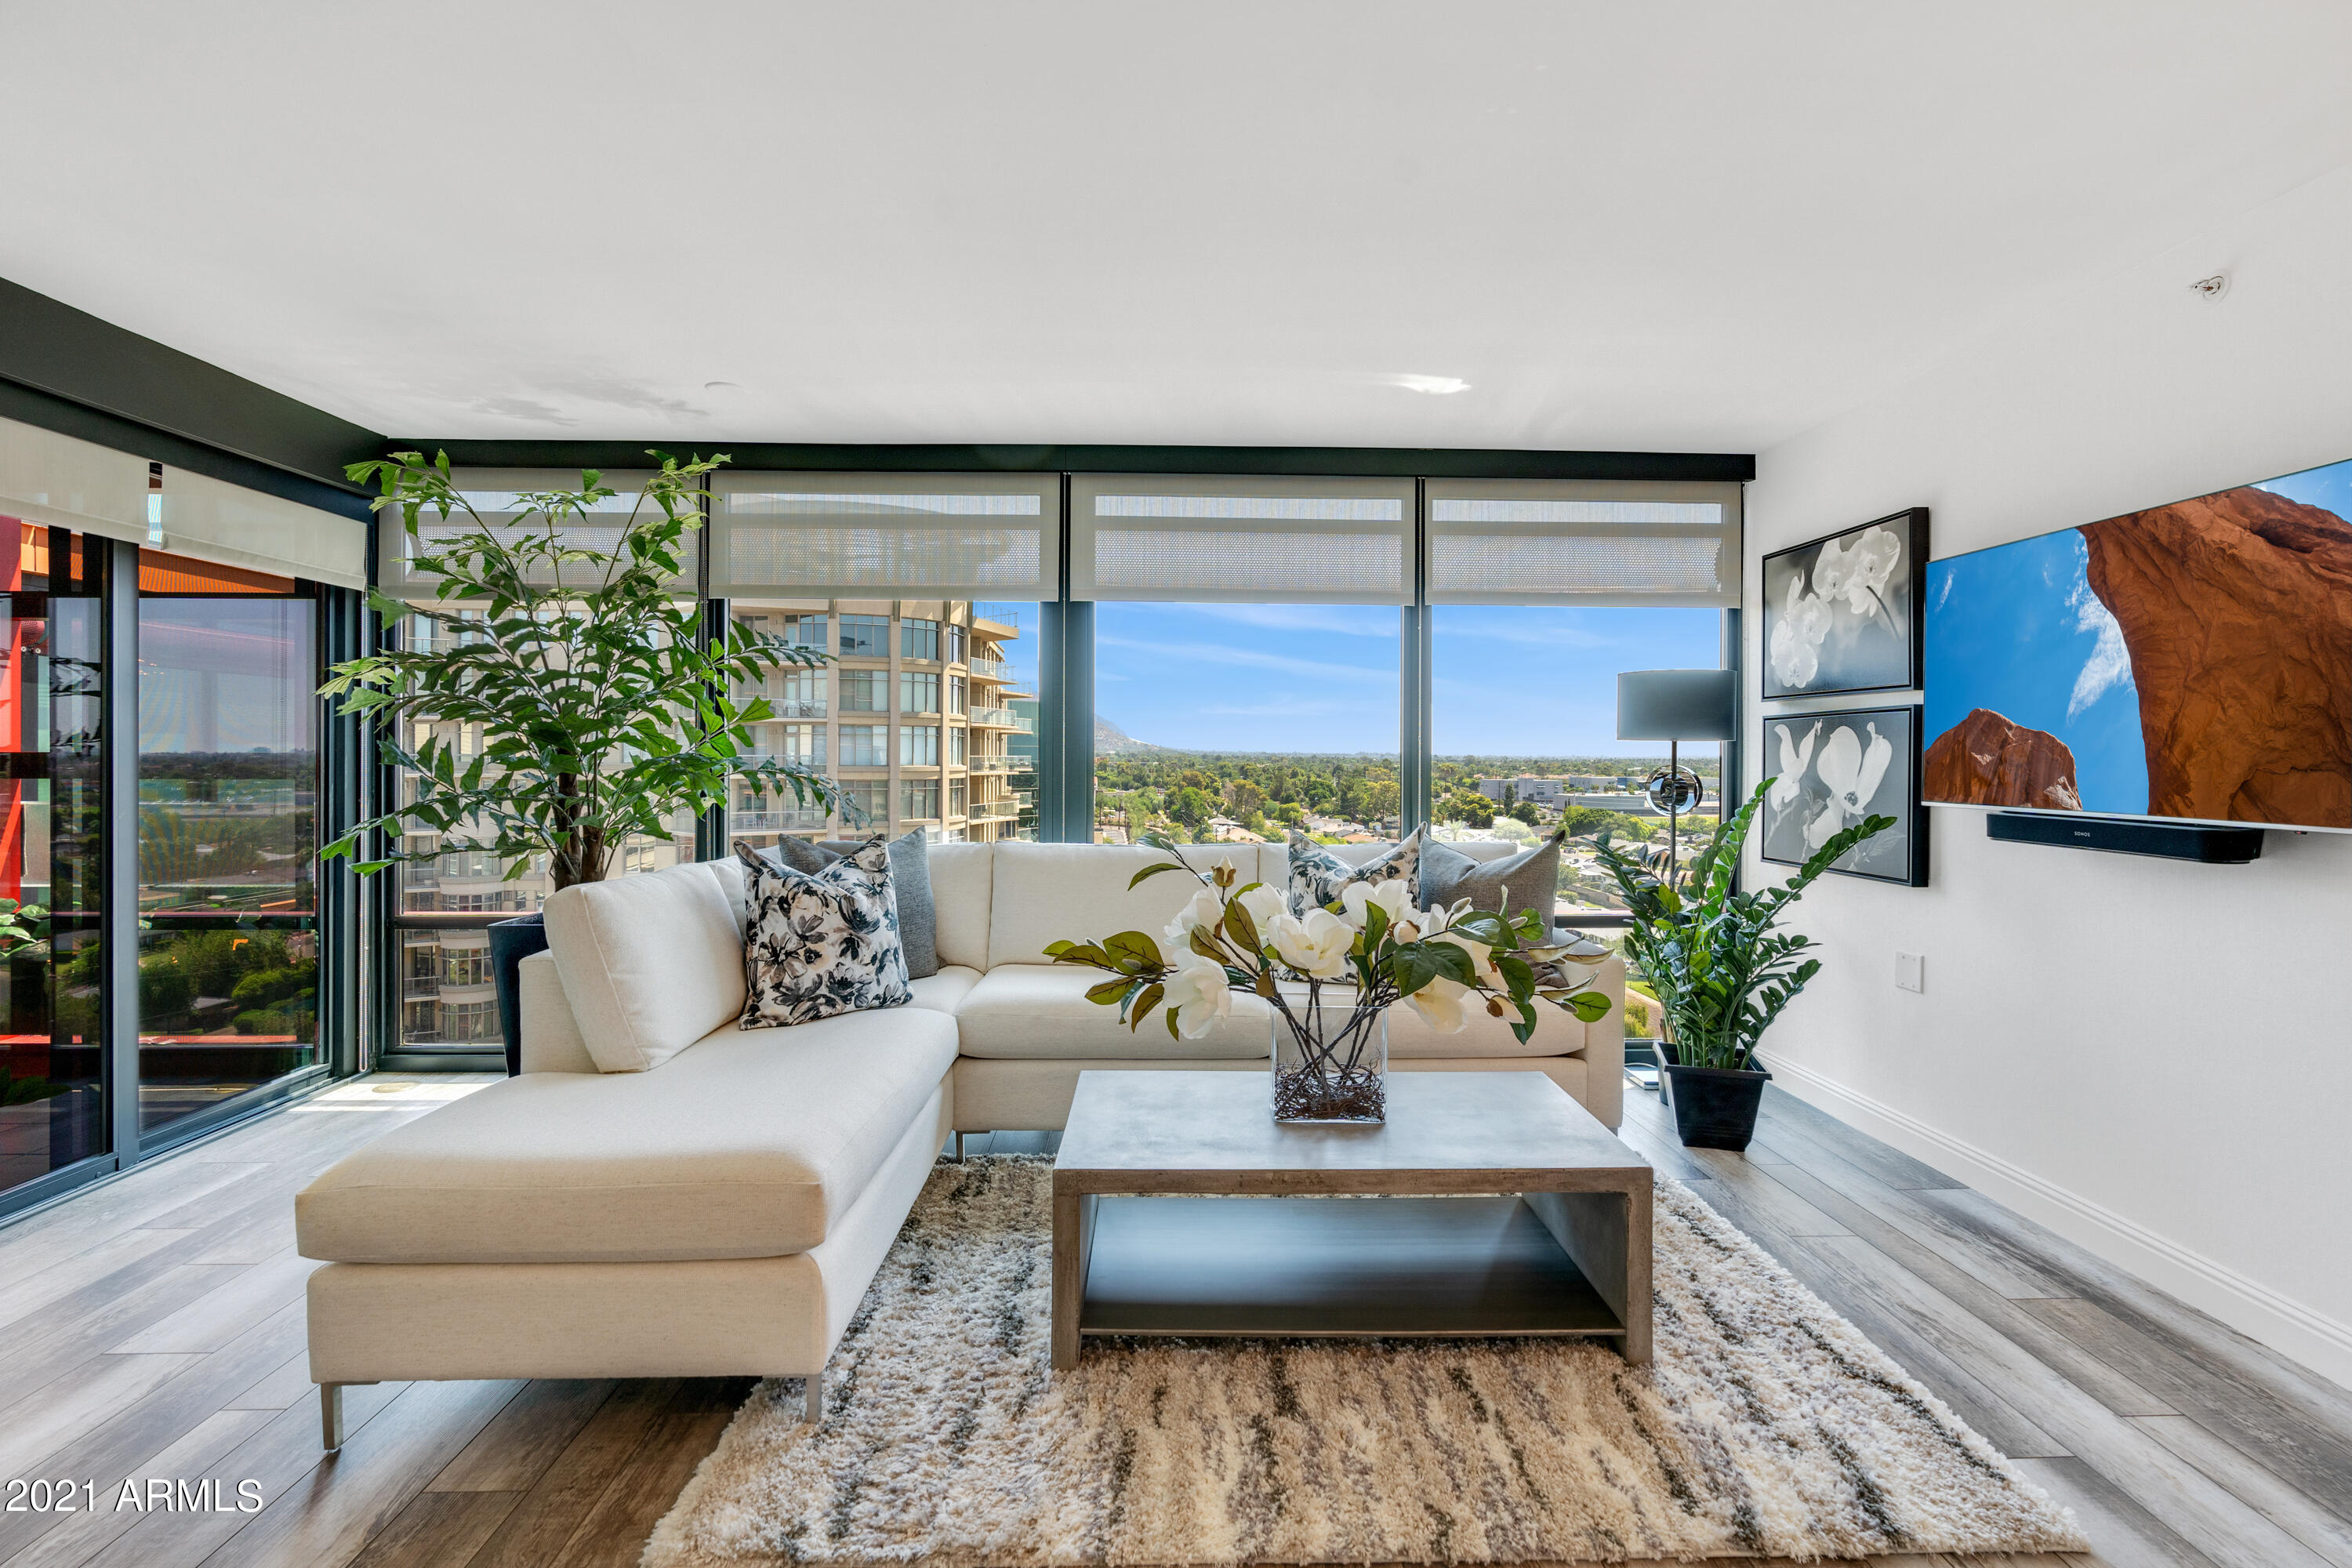 Completely remodeled unit with amazing lush green valley views from both living room and master. Redesigned kitchen now offers two full walls of cabinets and counter space featuring beautiful marble details. The large master opens up to the patio and offers a spacious walk in closet. Instant hot water and soft water. The upgraded bathroom offers a light and bright palate rarely found in these units! Enjoy 360 views from the green rooftop common area and pool! Optima is conveniently located walking distance to some of the valleys best shopping and dining as well as Lifetime fitness. Location offers quick access to freeways and very short commute to the airport!This rare floor plan offers a wide open living room with no obstructing column!